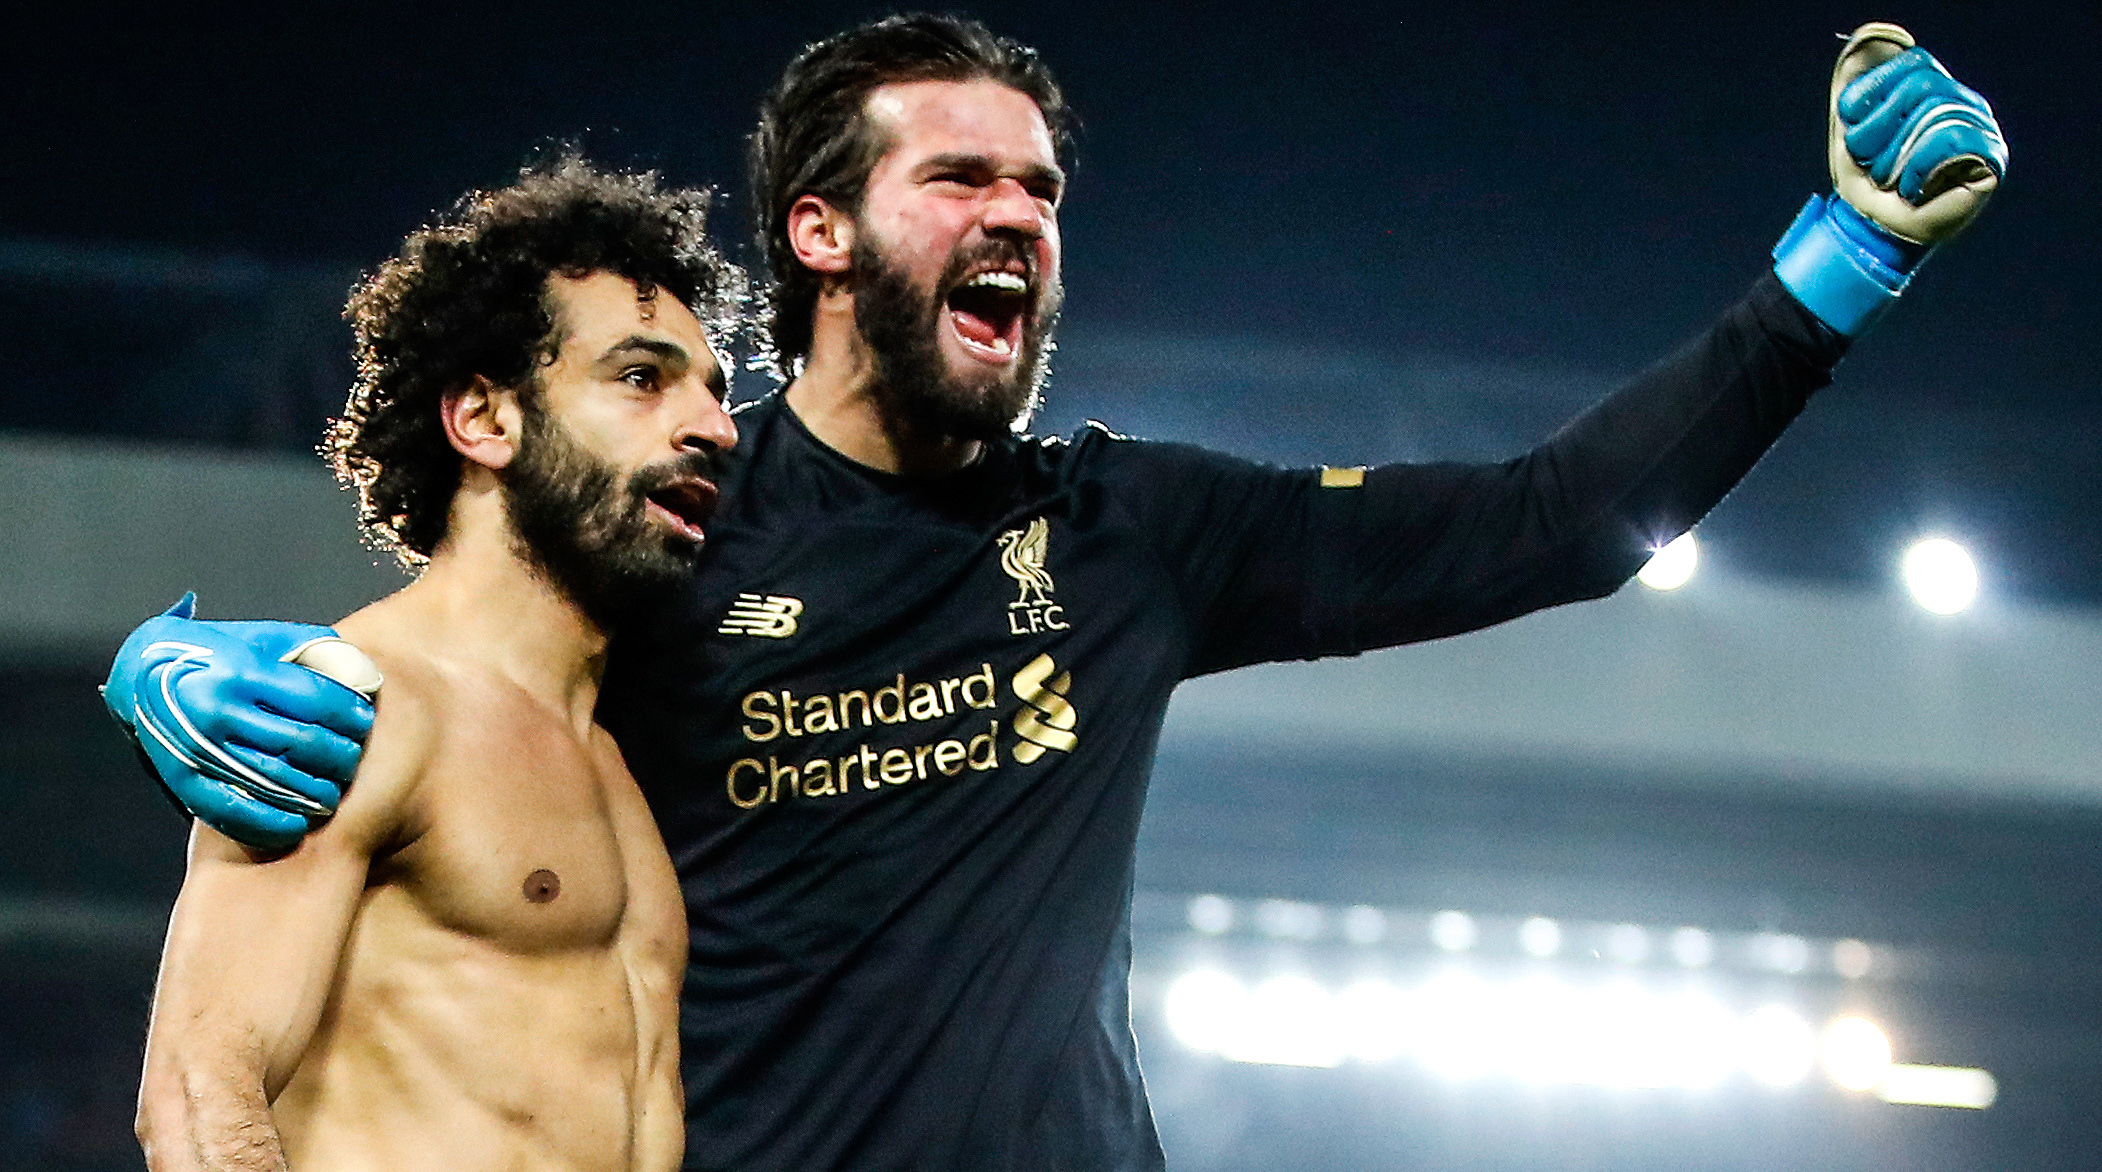 Liverpool's Alisson Becker and Mohamed Salah are celebrating after a huge goal against Manchester United